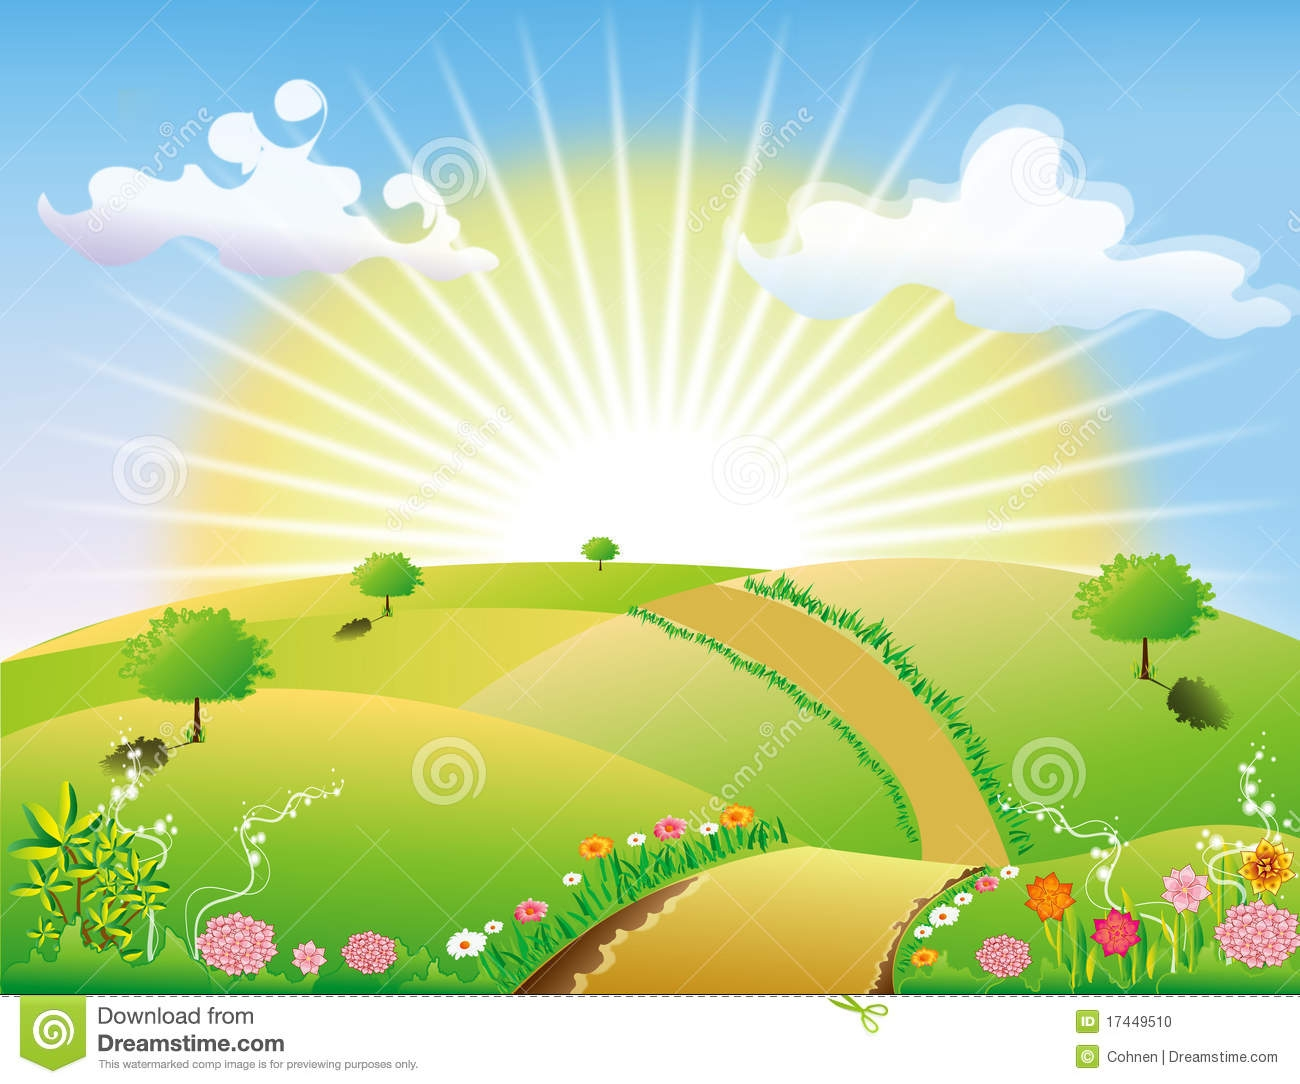 Nature clipart nature background Nature clipart nature of of